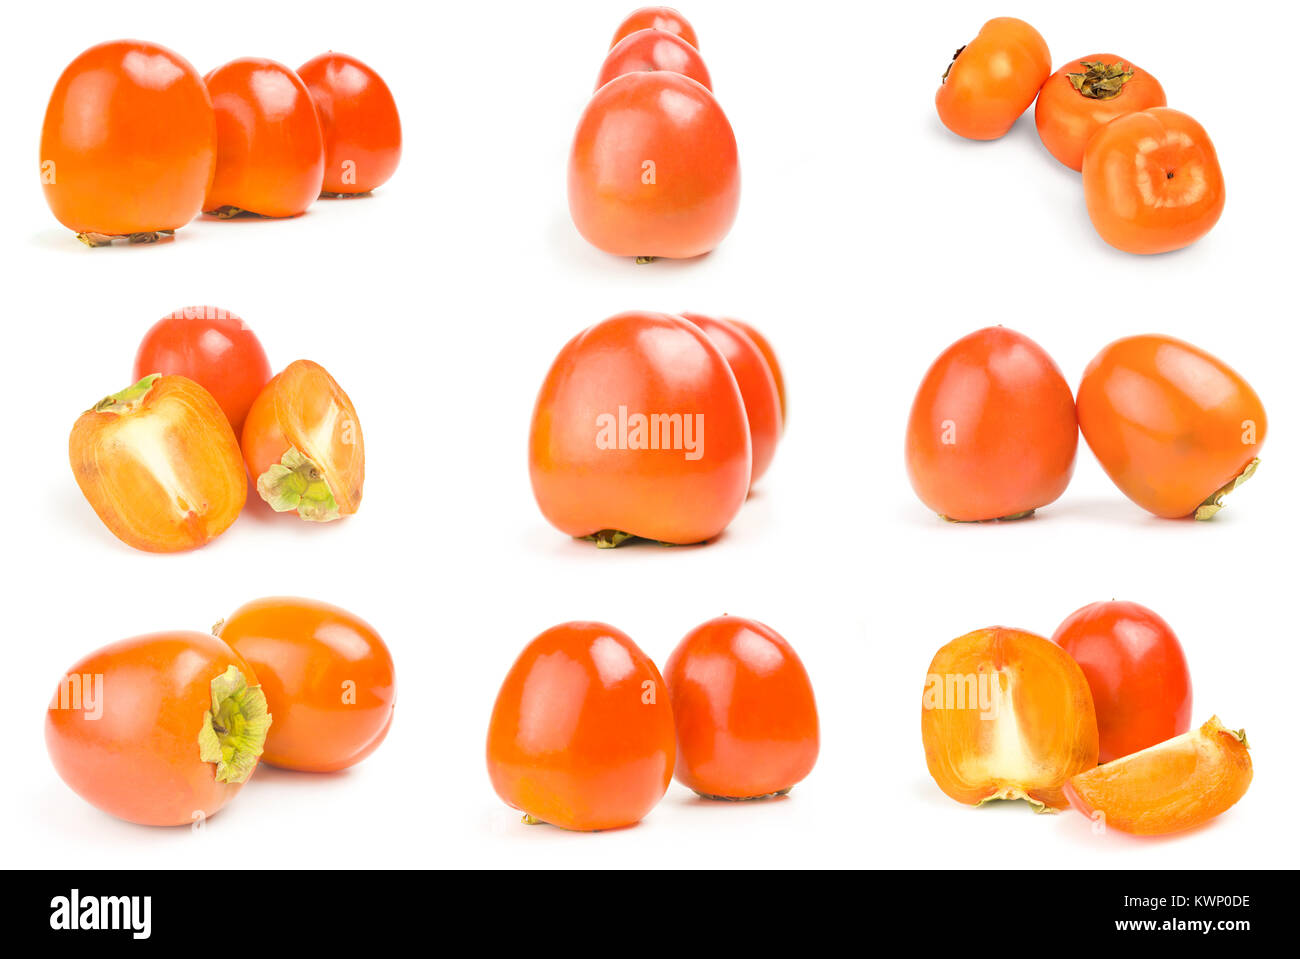 Collage of persimmon ( Kaki ) on a white background cutout - Stock Image